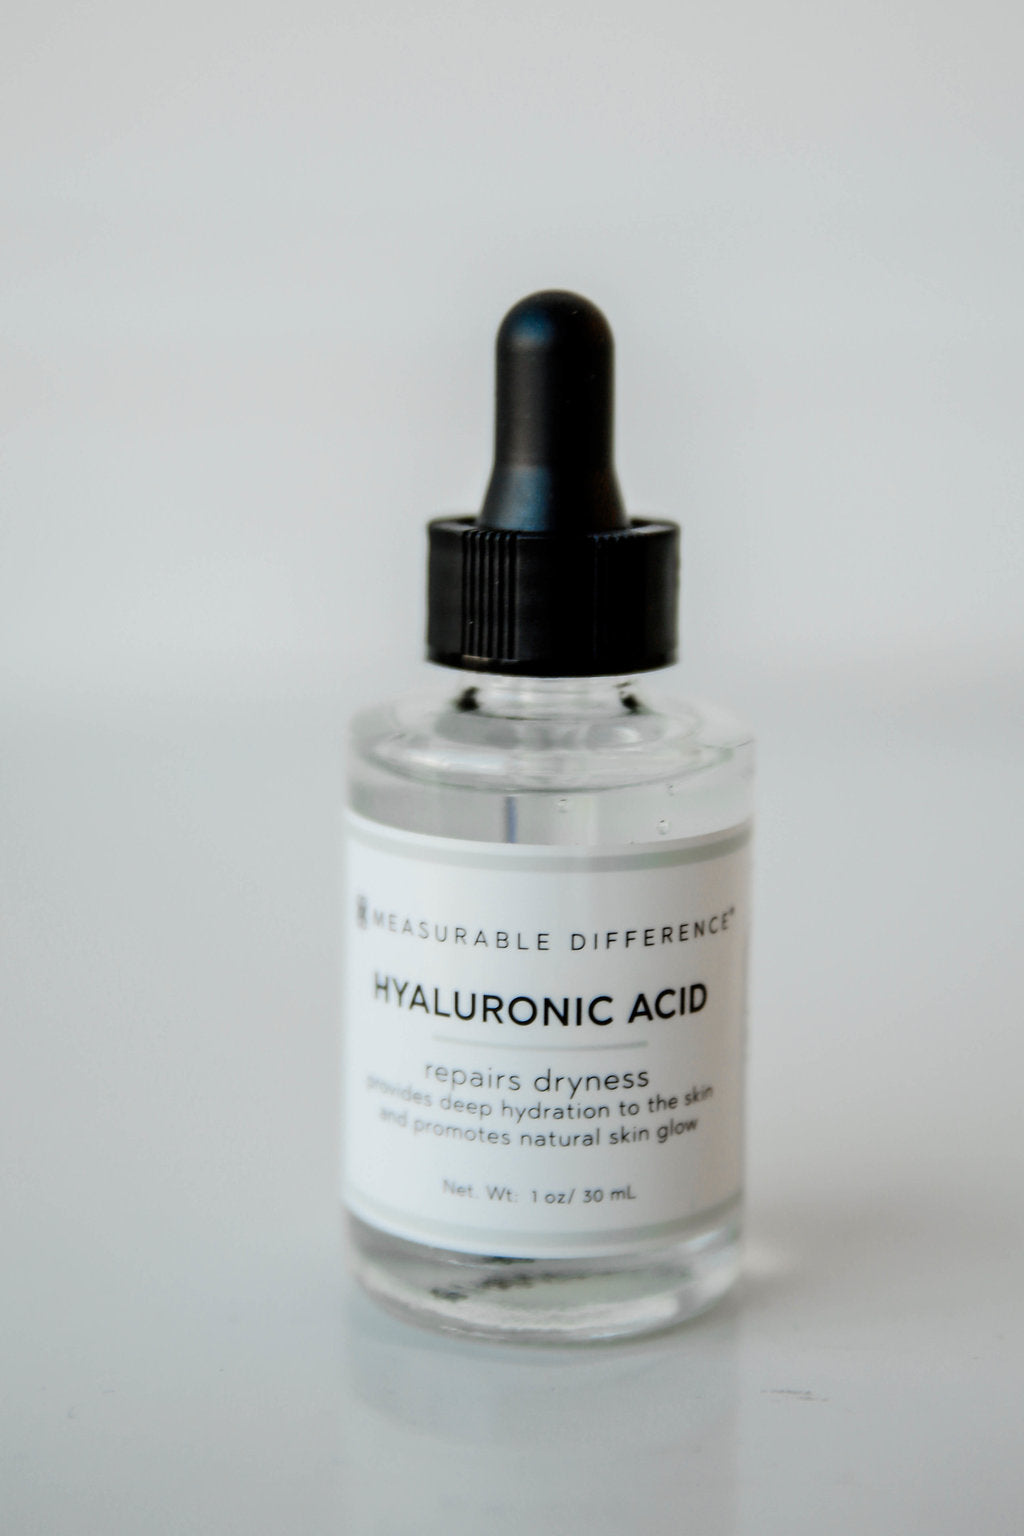 Measurable difference serum